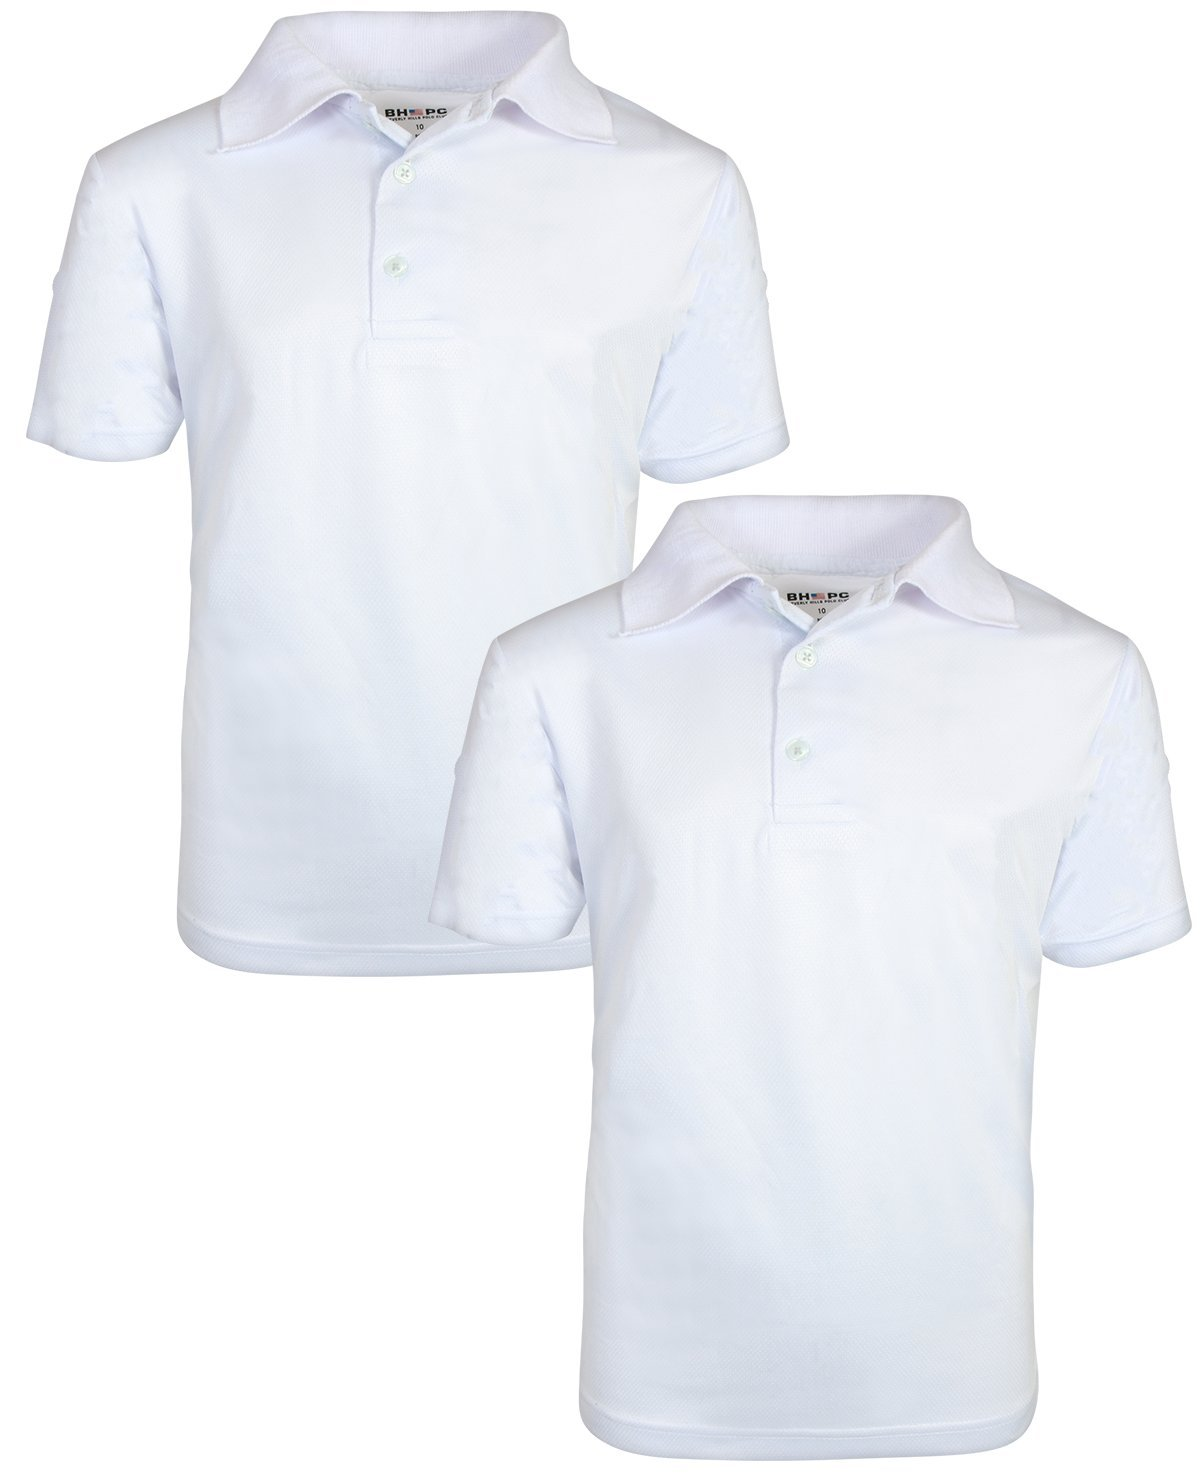 Beverly Hills Polo Club Boys Short Sleeve Dry-Fit Performance School Uniform Polo (2 Pack), White, 6'